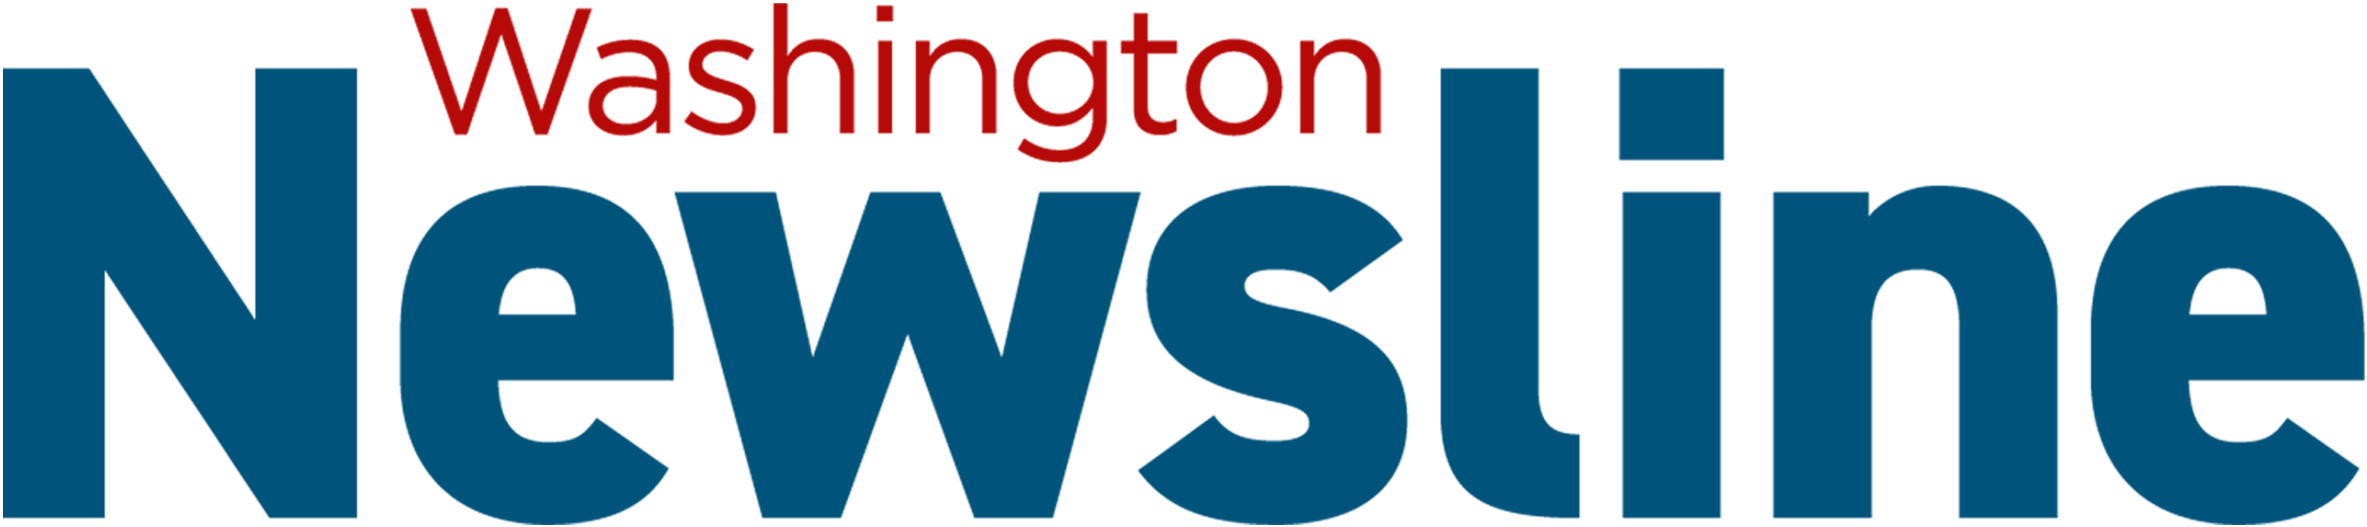 Subscribe to Washington Newsline